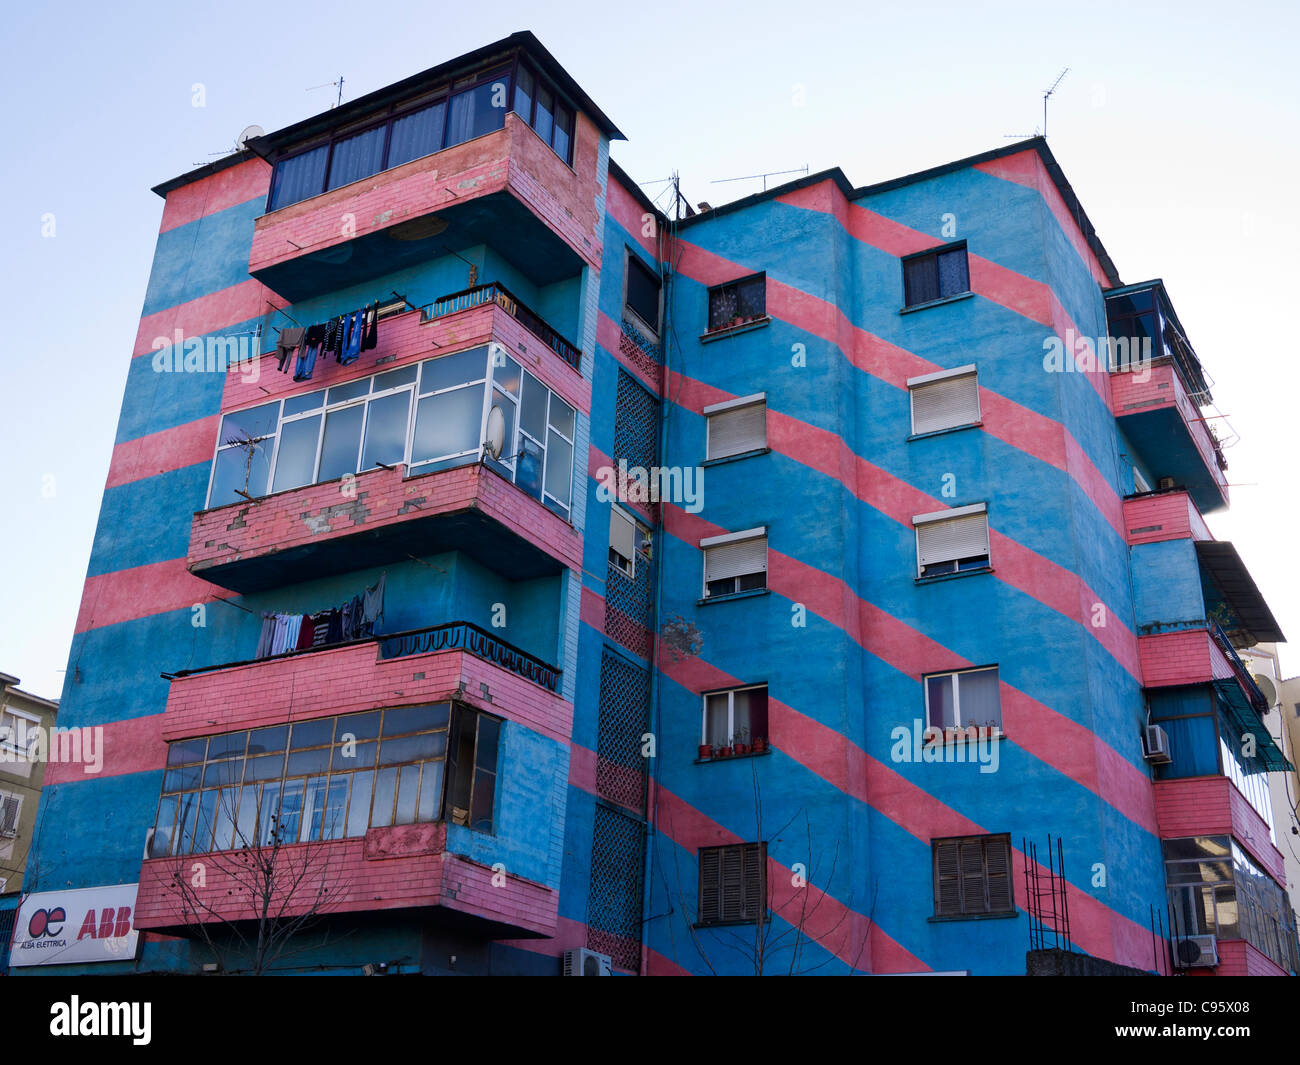 Brightly painted buildings in Tirana, Albania. - Stock Image